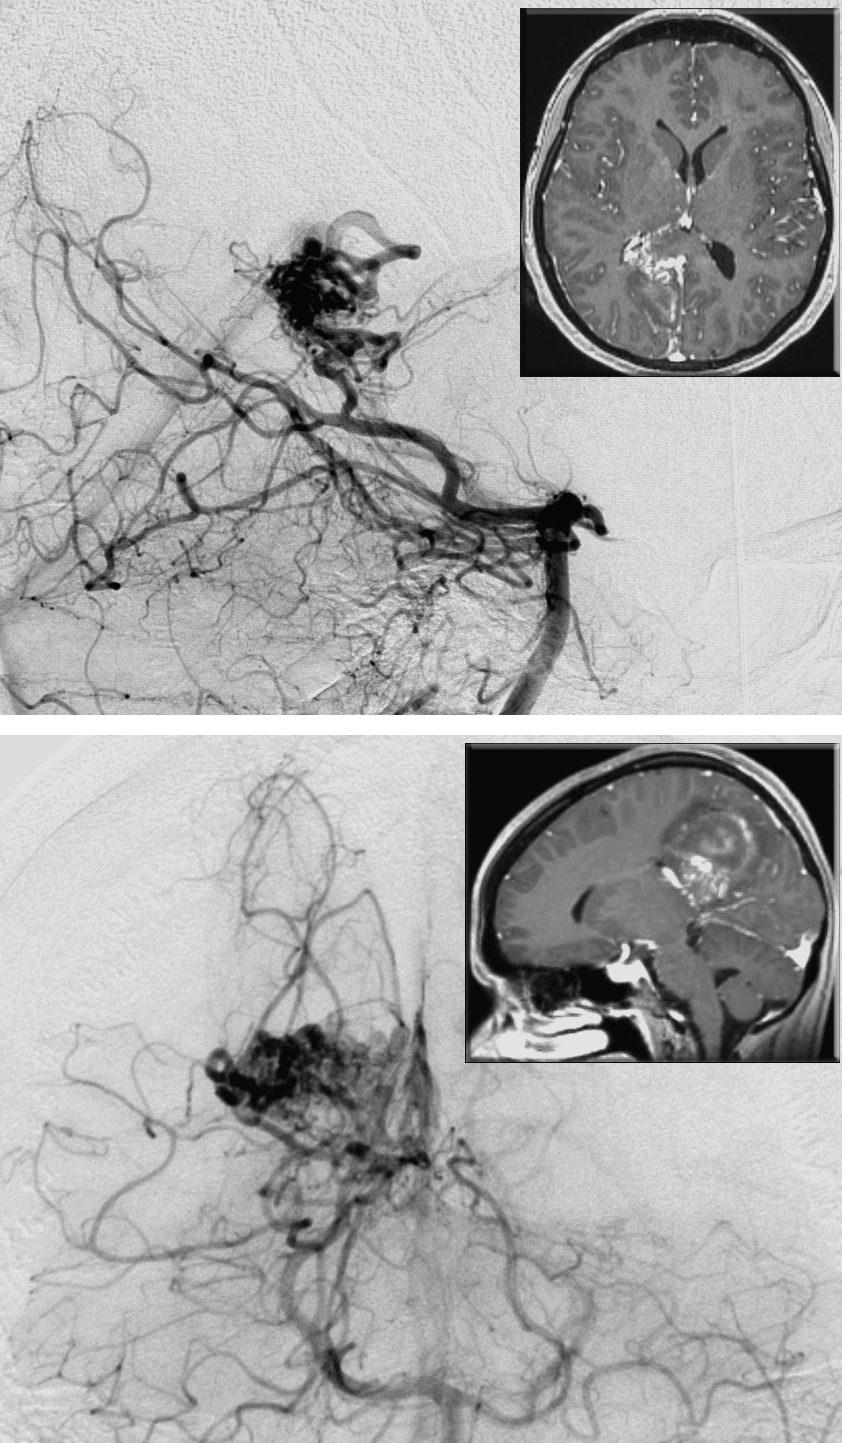 Figure 7: This hemorrhagic medial parietal AVM is primarily fed by the branches of the distal PCA. Note the lateral (upper image) and anteroposterior (lower image) vertebral angiograms and corresponding MRIs (insets). The nidus reaches the atrium. The ipsilateral interhemispheric approach may not safely reach the periventricular extent of the lesion.